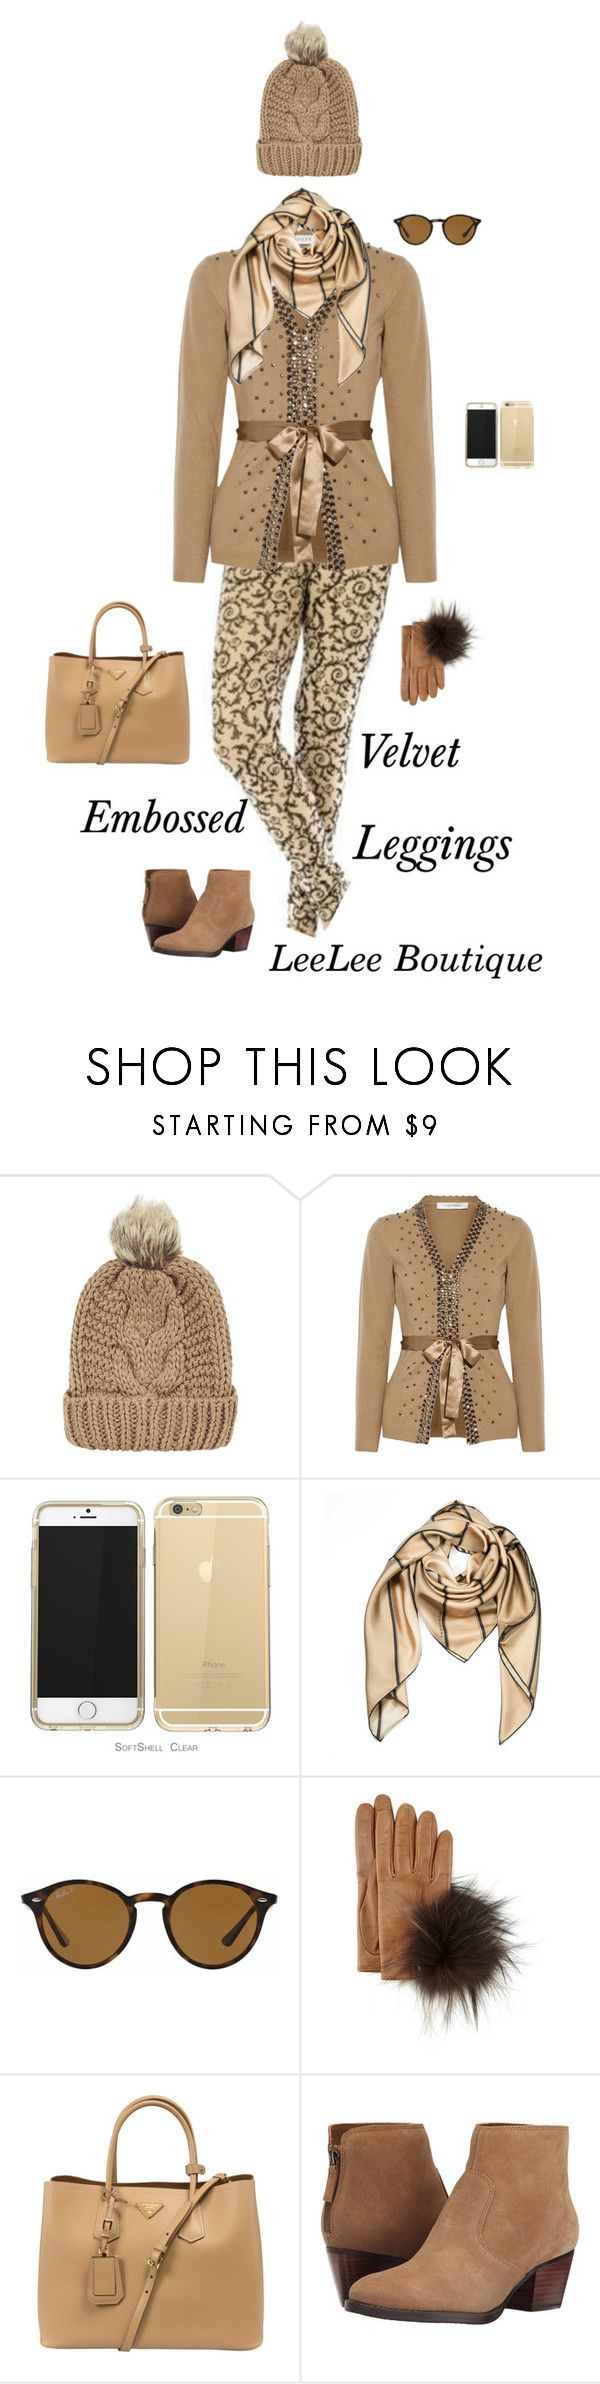 """""""Embossed Velvet Nude Leggings"""" by leeleeboutique ❤ liked on Polyvore featuring Chicnova Fashion, Valentino, Burberry, Ray-Ban, Inverni, Prada and Nine West"""